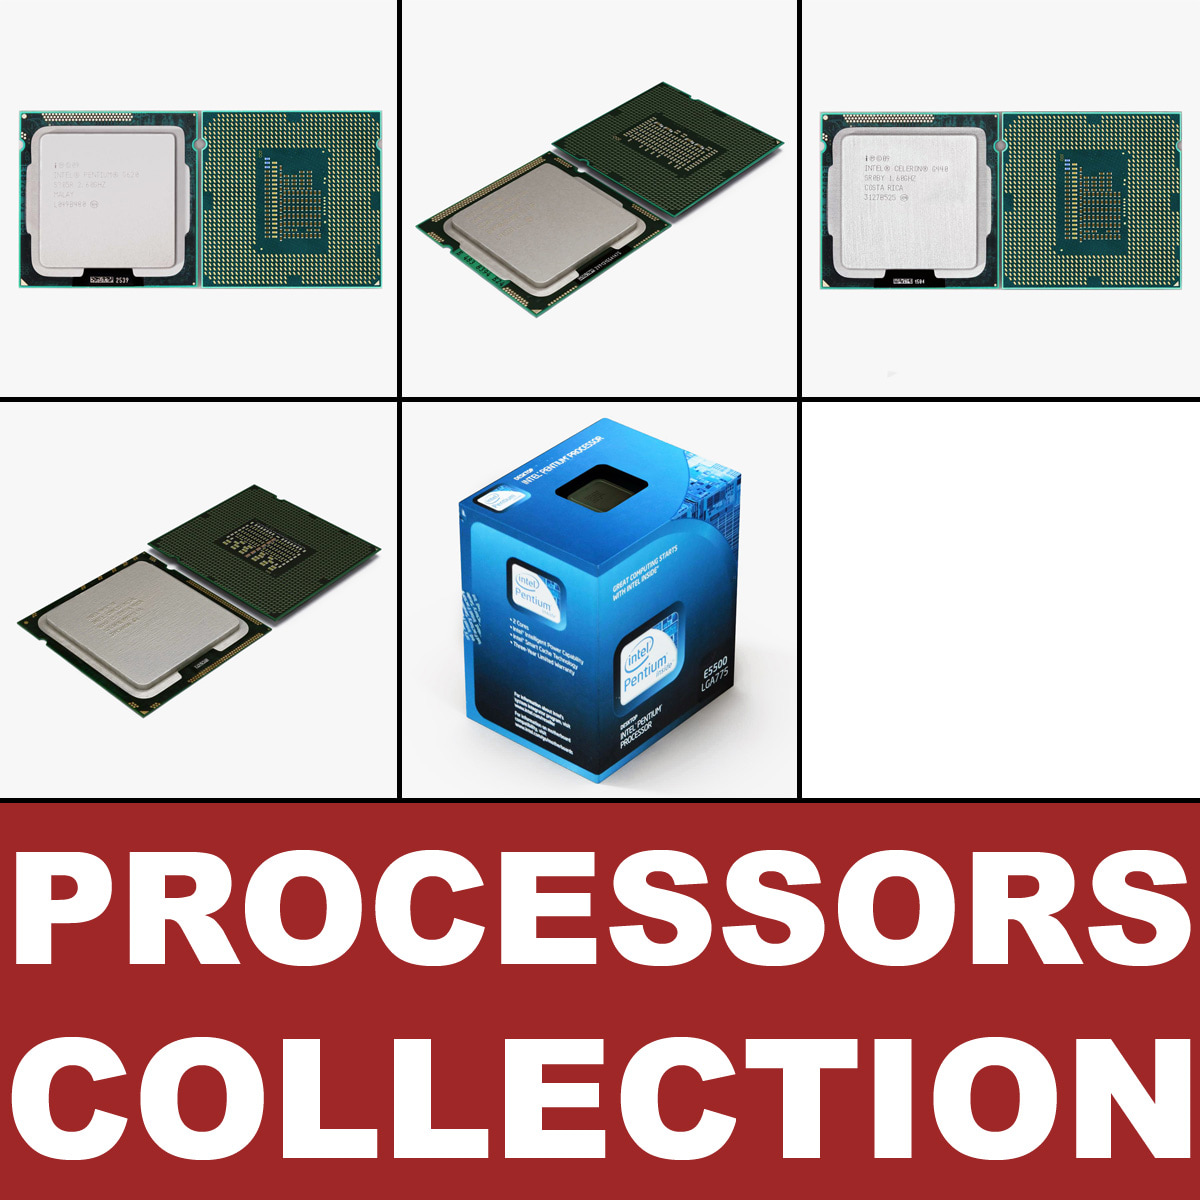 Intel_Processors_Collection_00.jpg